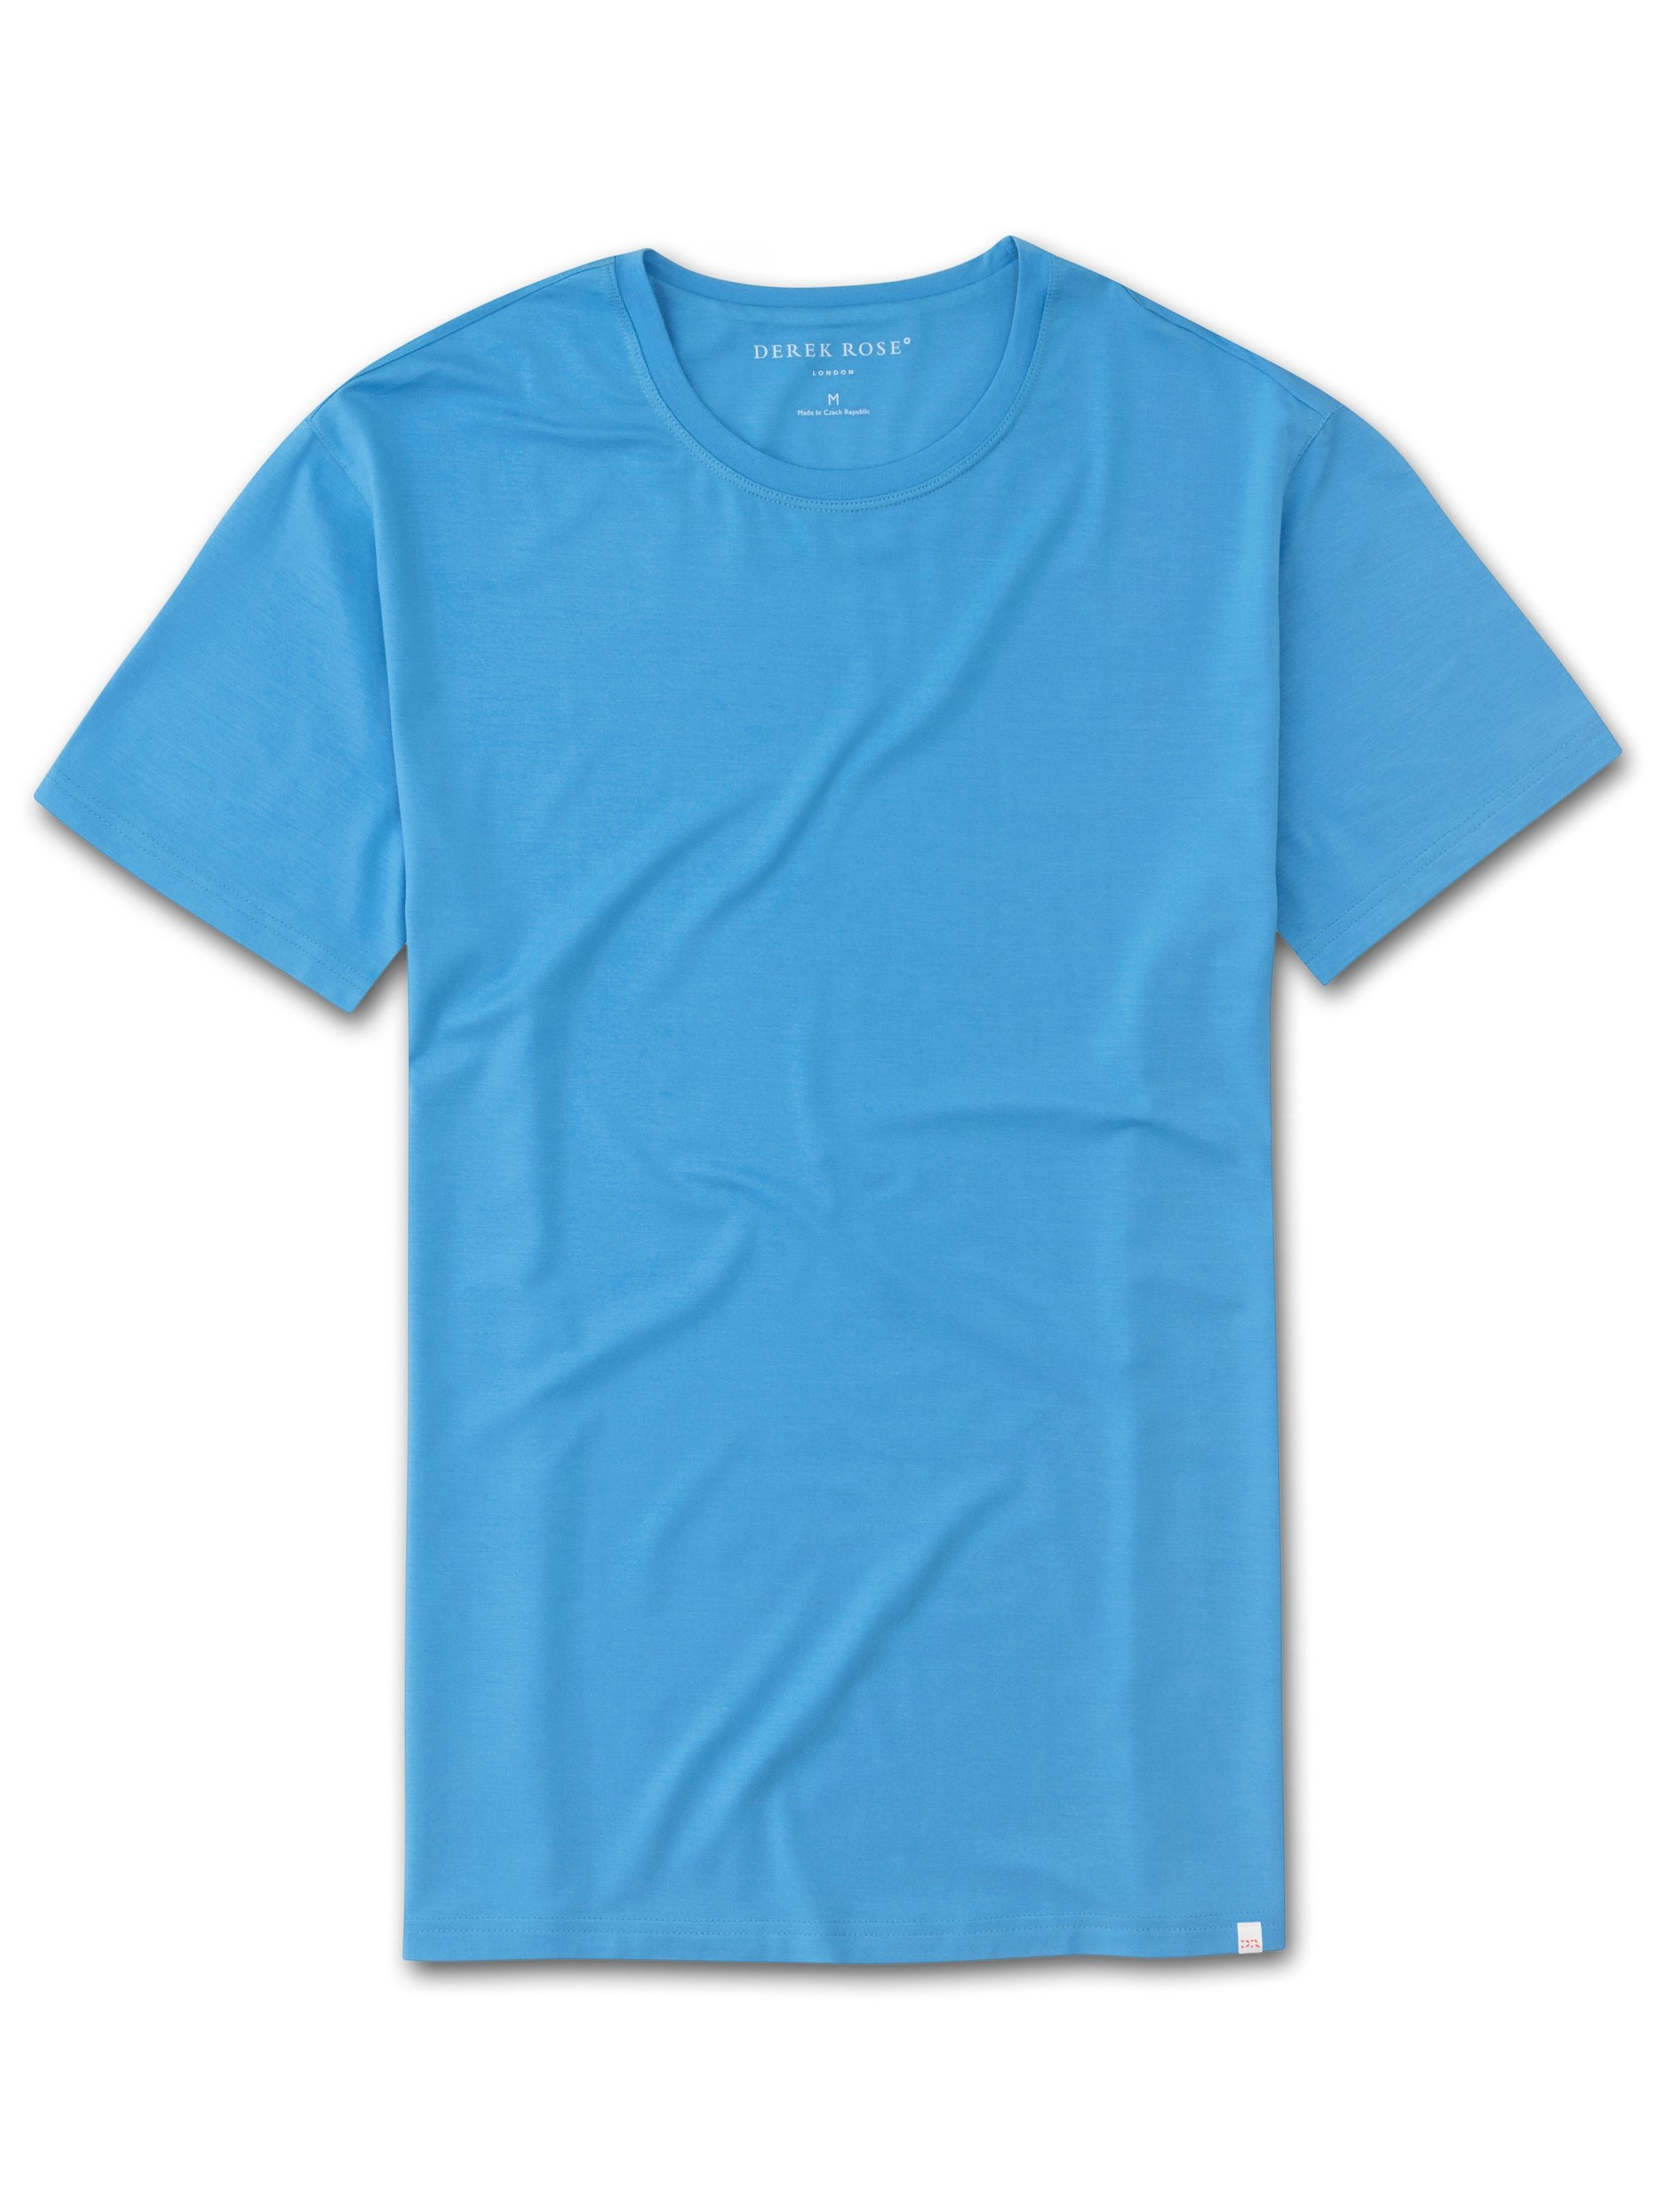 Men's Short Sleeve T-Shirt Basel 8 Micro Modal Stretch Sky